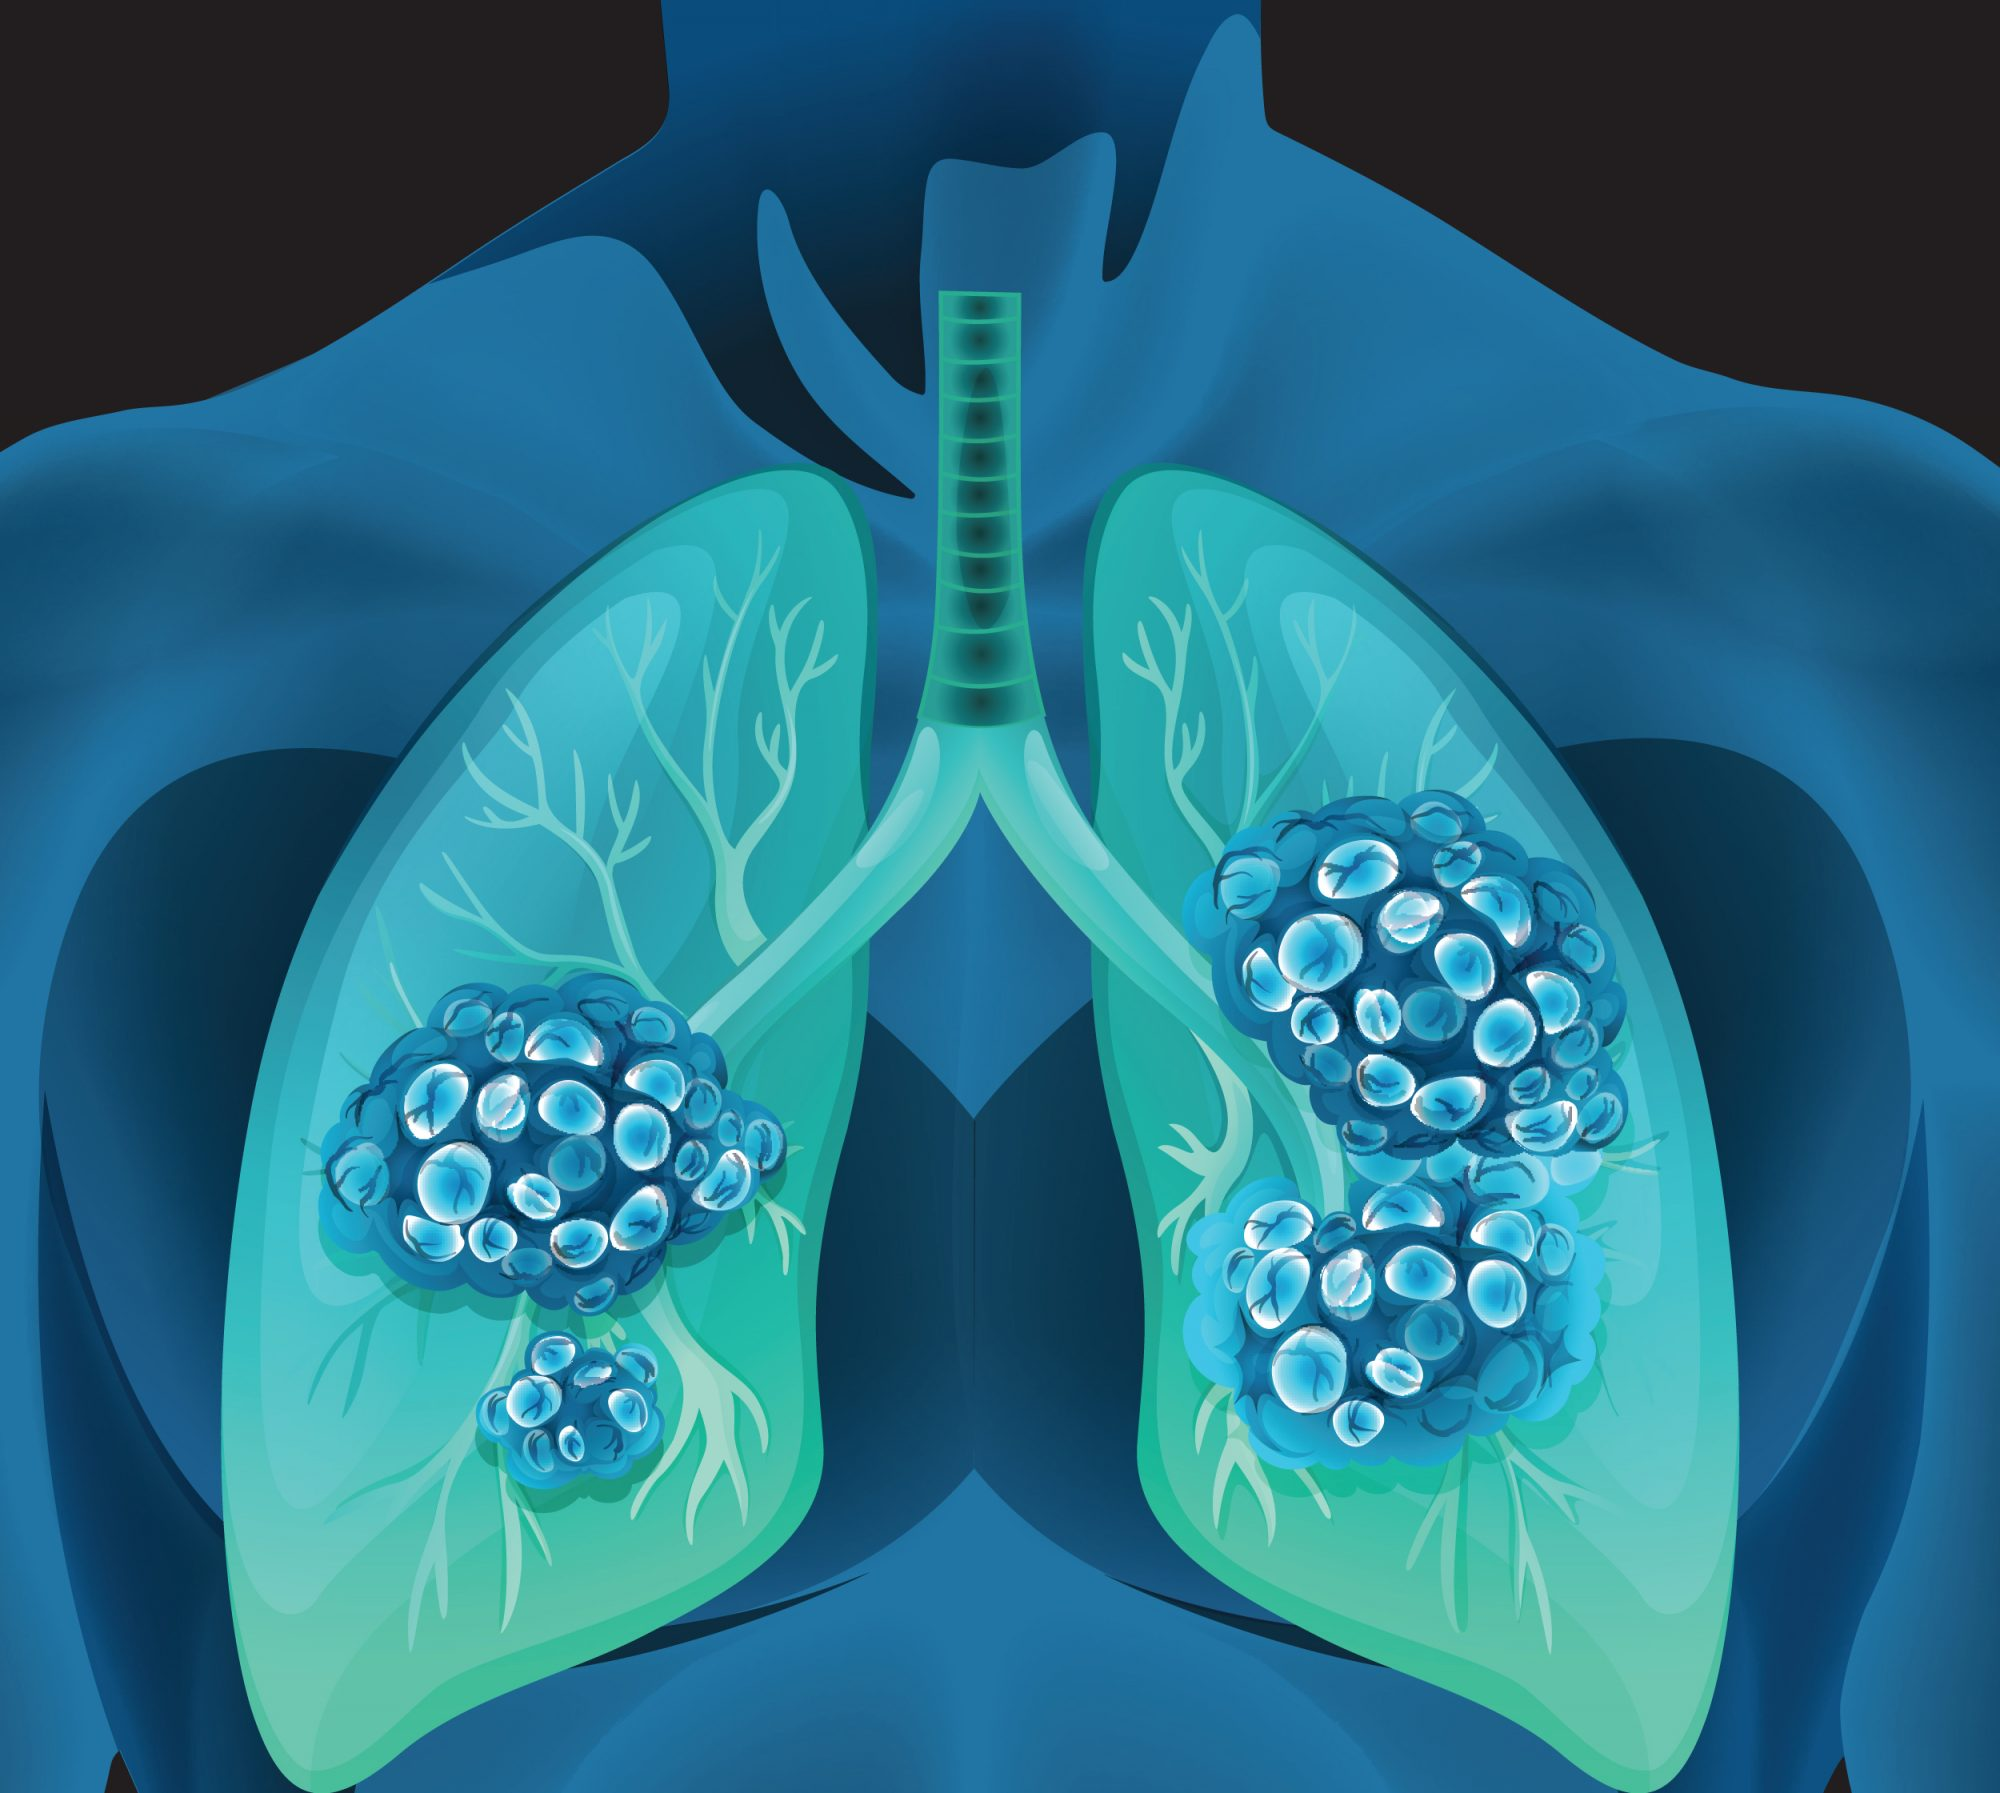 Lung Health - Magazine cover